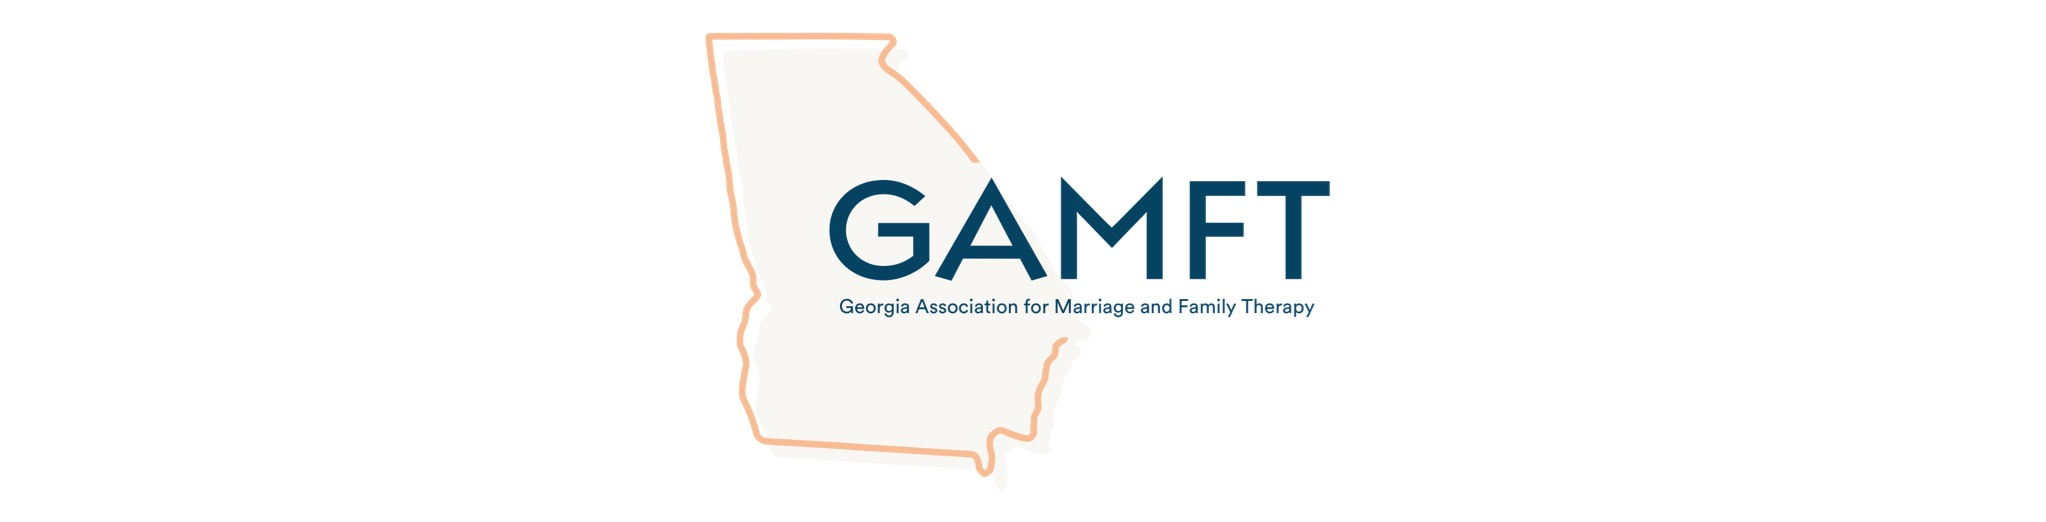 Georgia Association for Marriage and Family Therapy